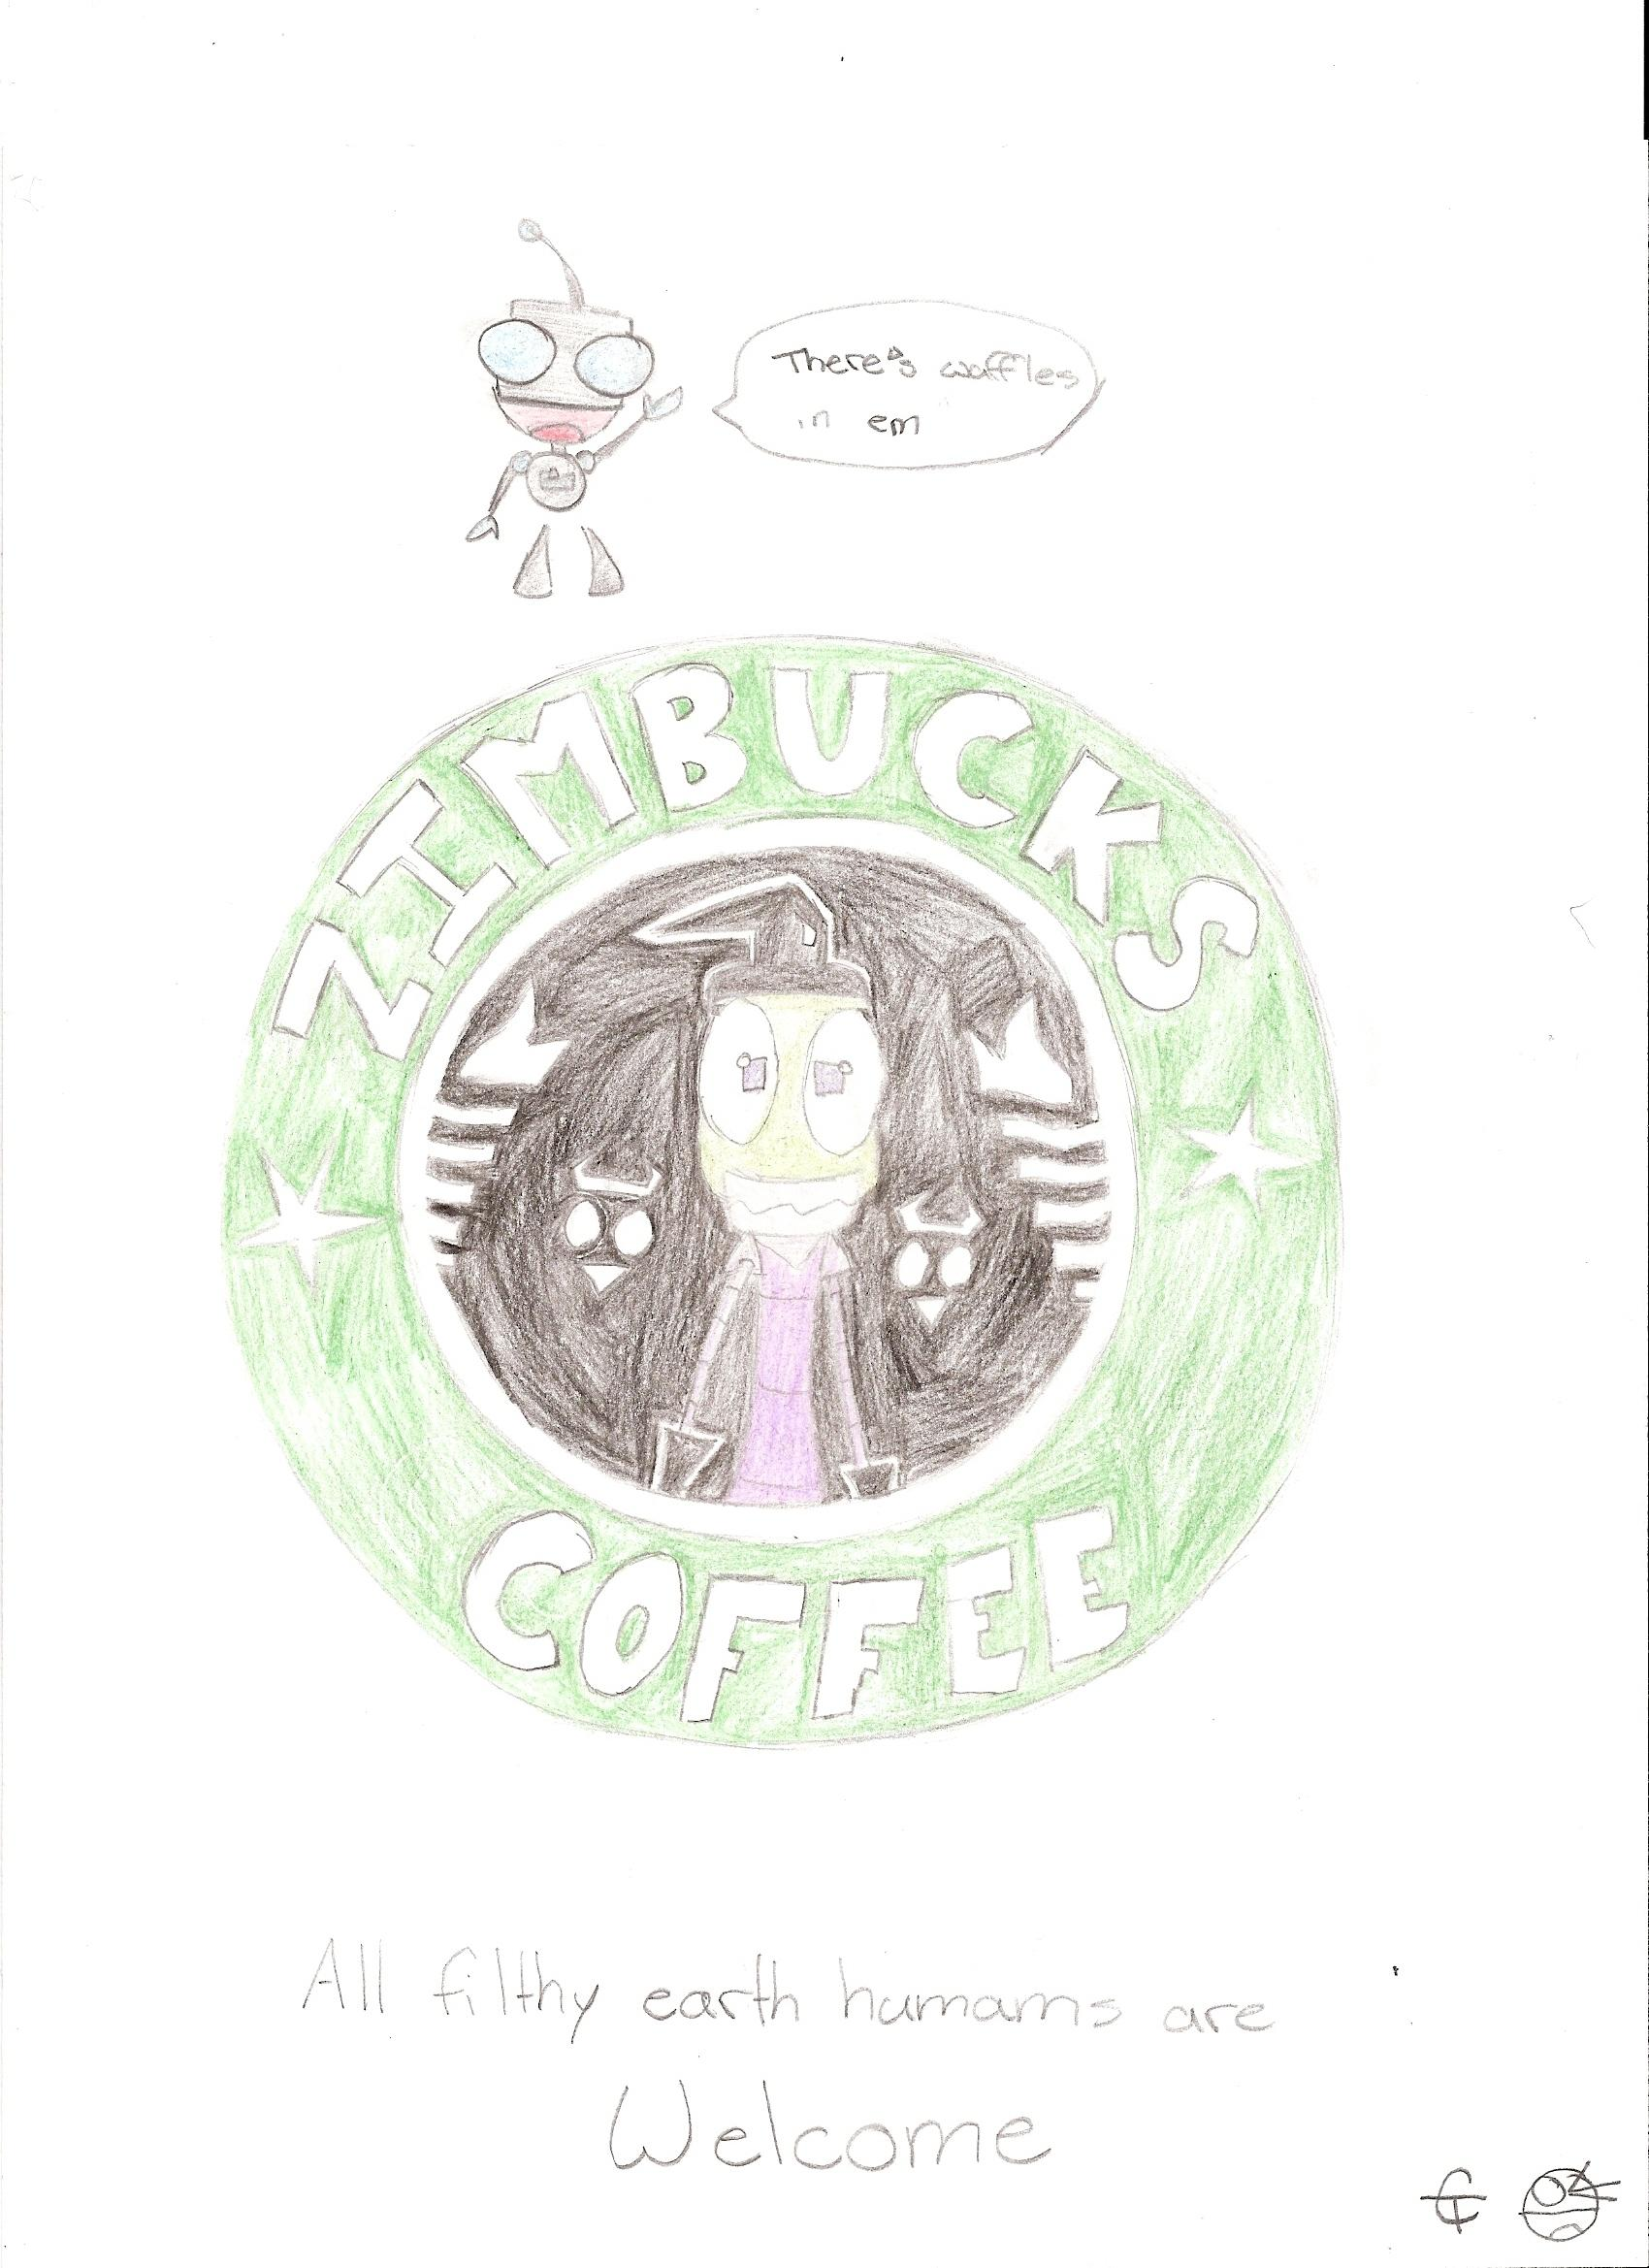 zimbucks by invadercris